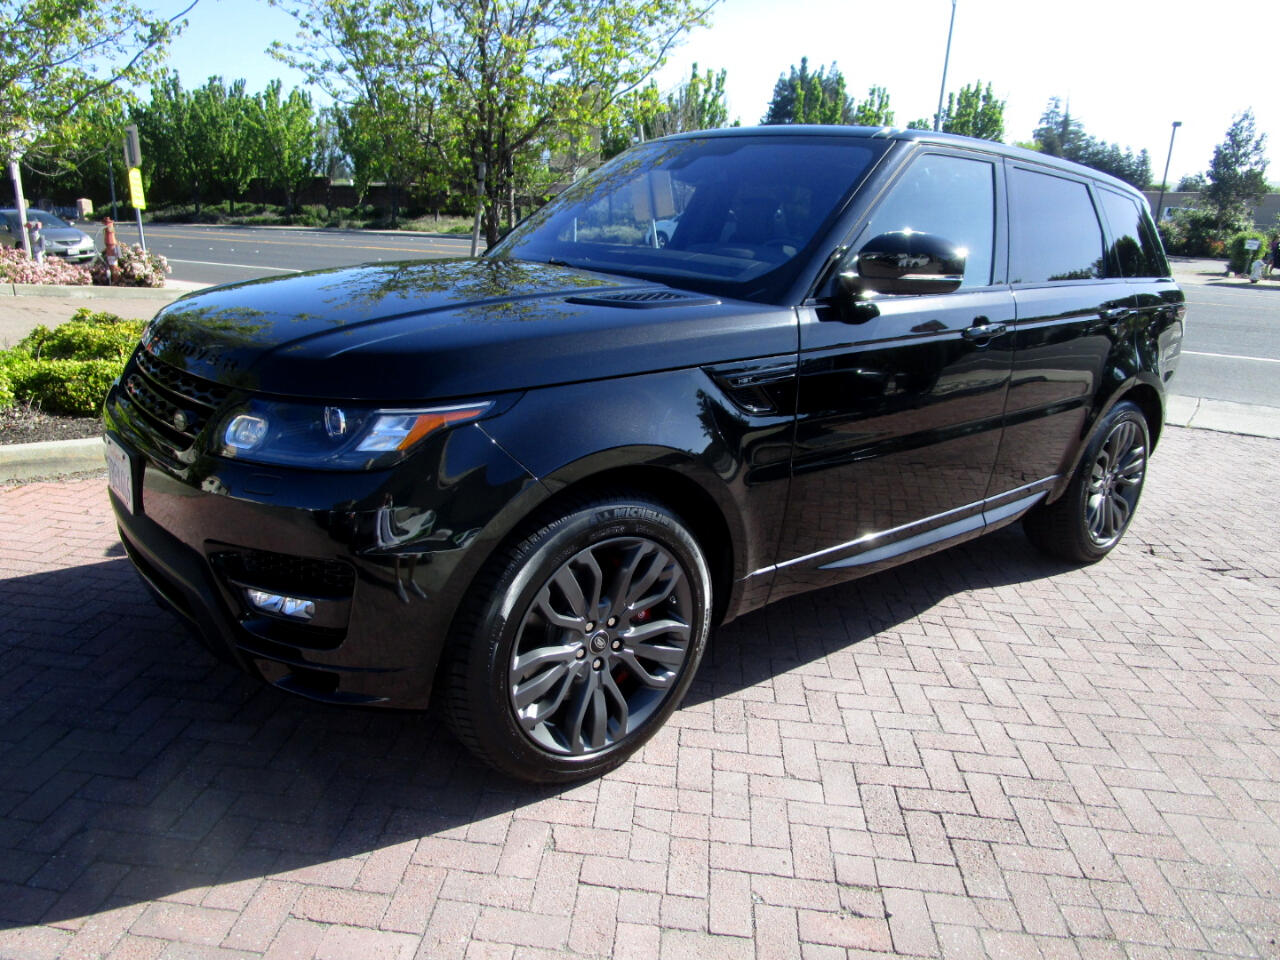 2016 Land Rover Range Rover Sport RARE LIMITED EDITION HST SPORT**ENHANCED BODY KIT*